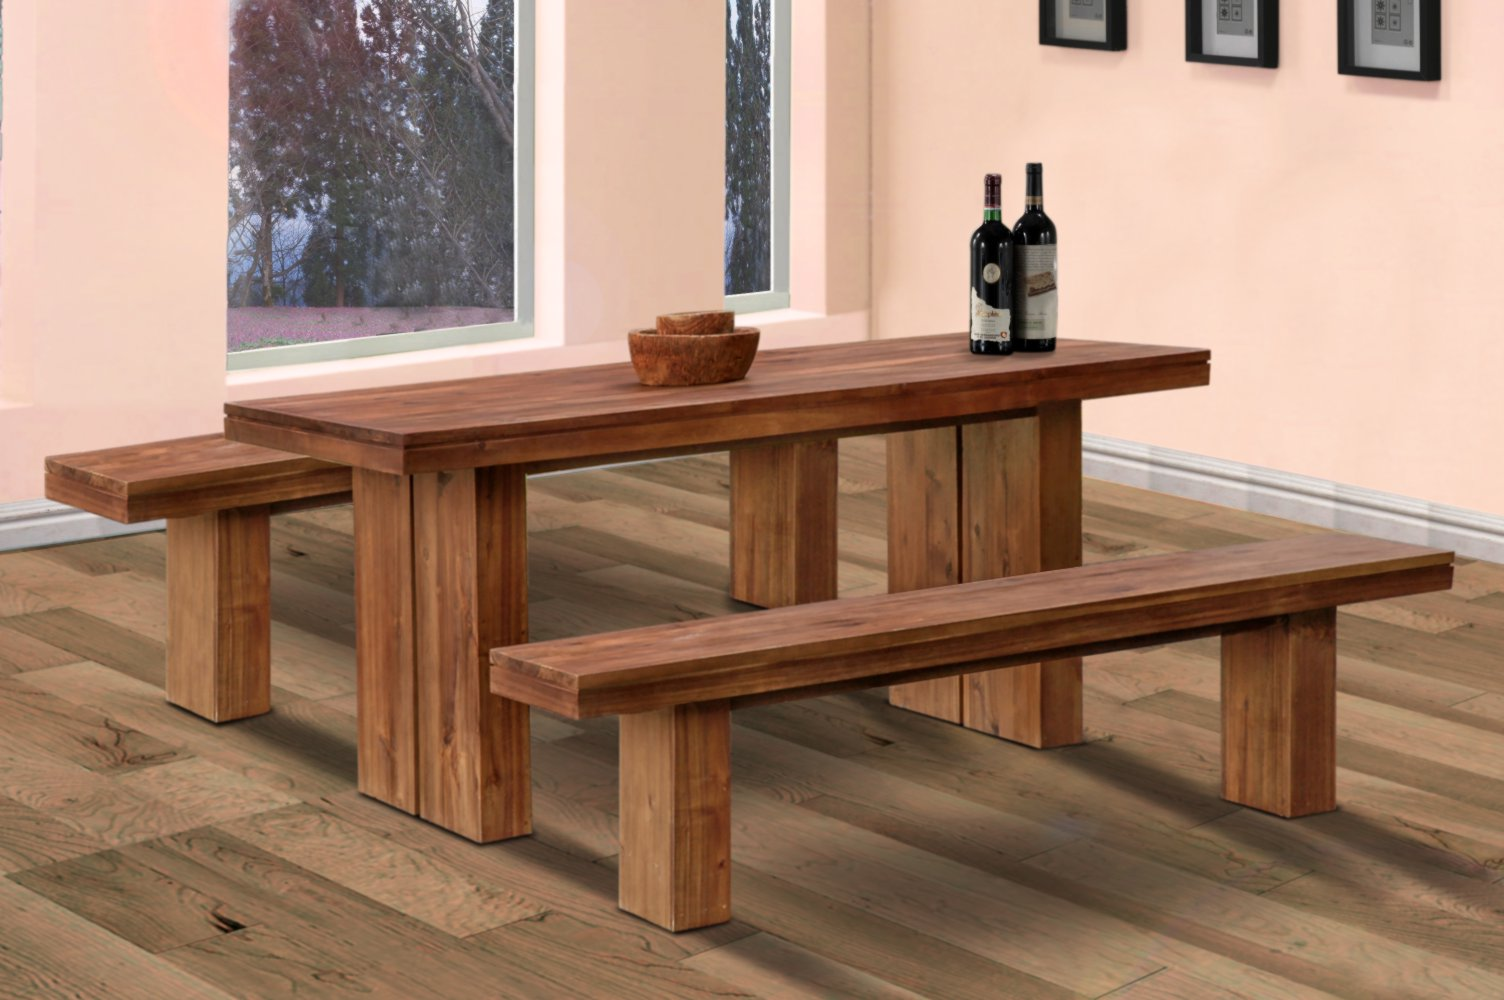 Kitchen Tables With Bench Can We Paint Cabinets Danielle Dining Table And Java Valentti